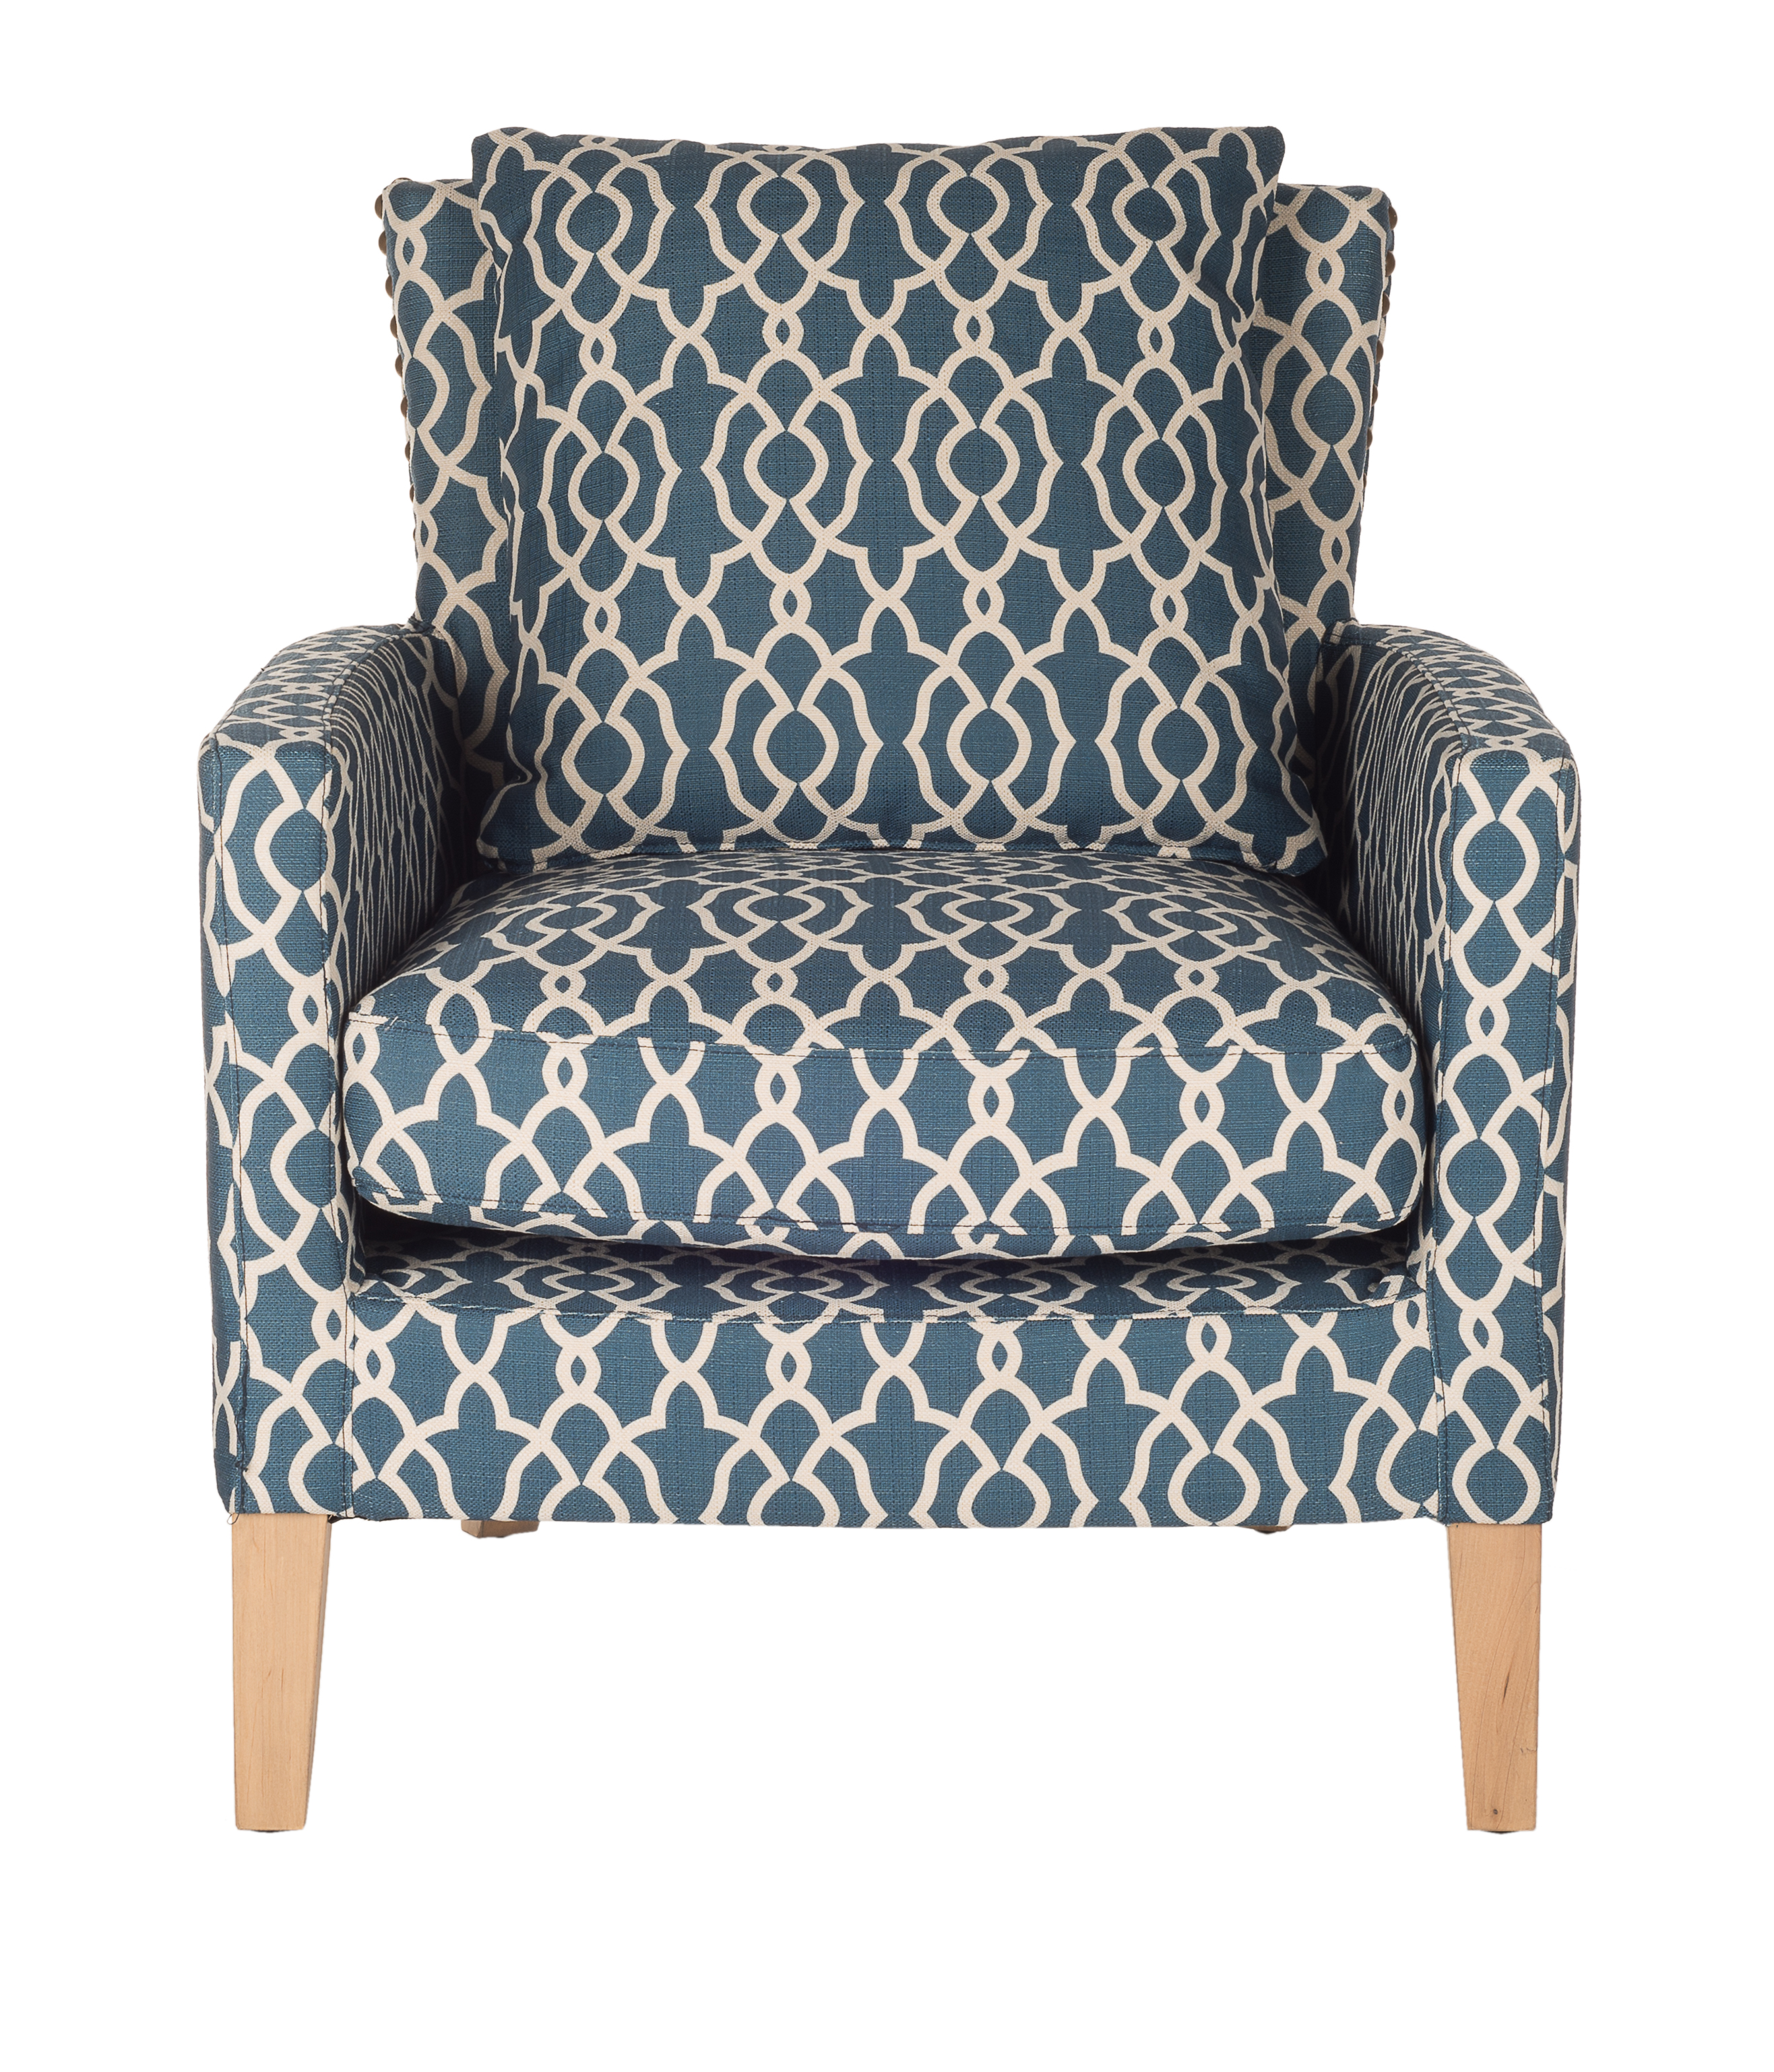 Dream in blue lifestyle paris - Fauteuil pour chambre adulte ...